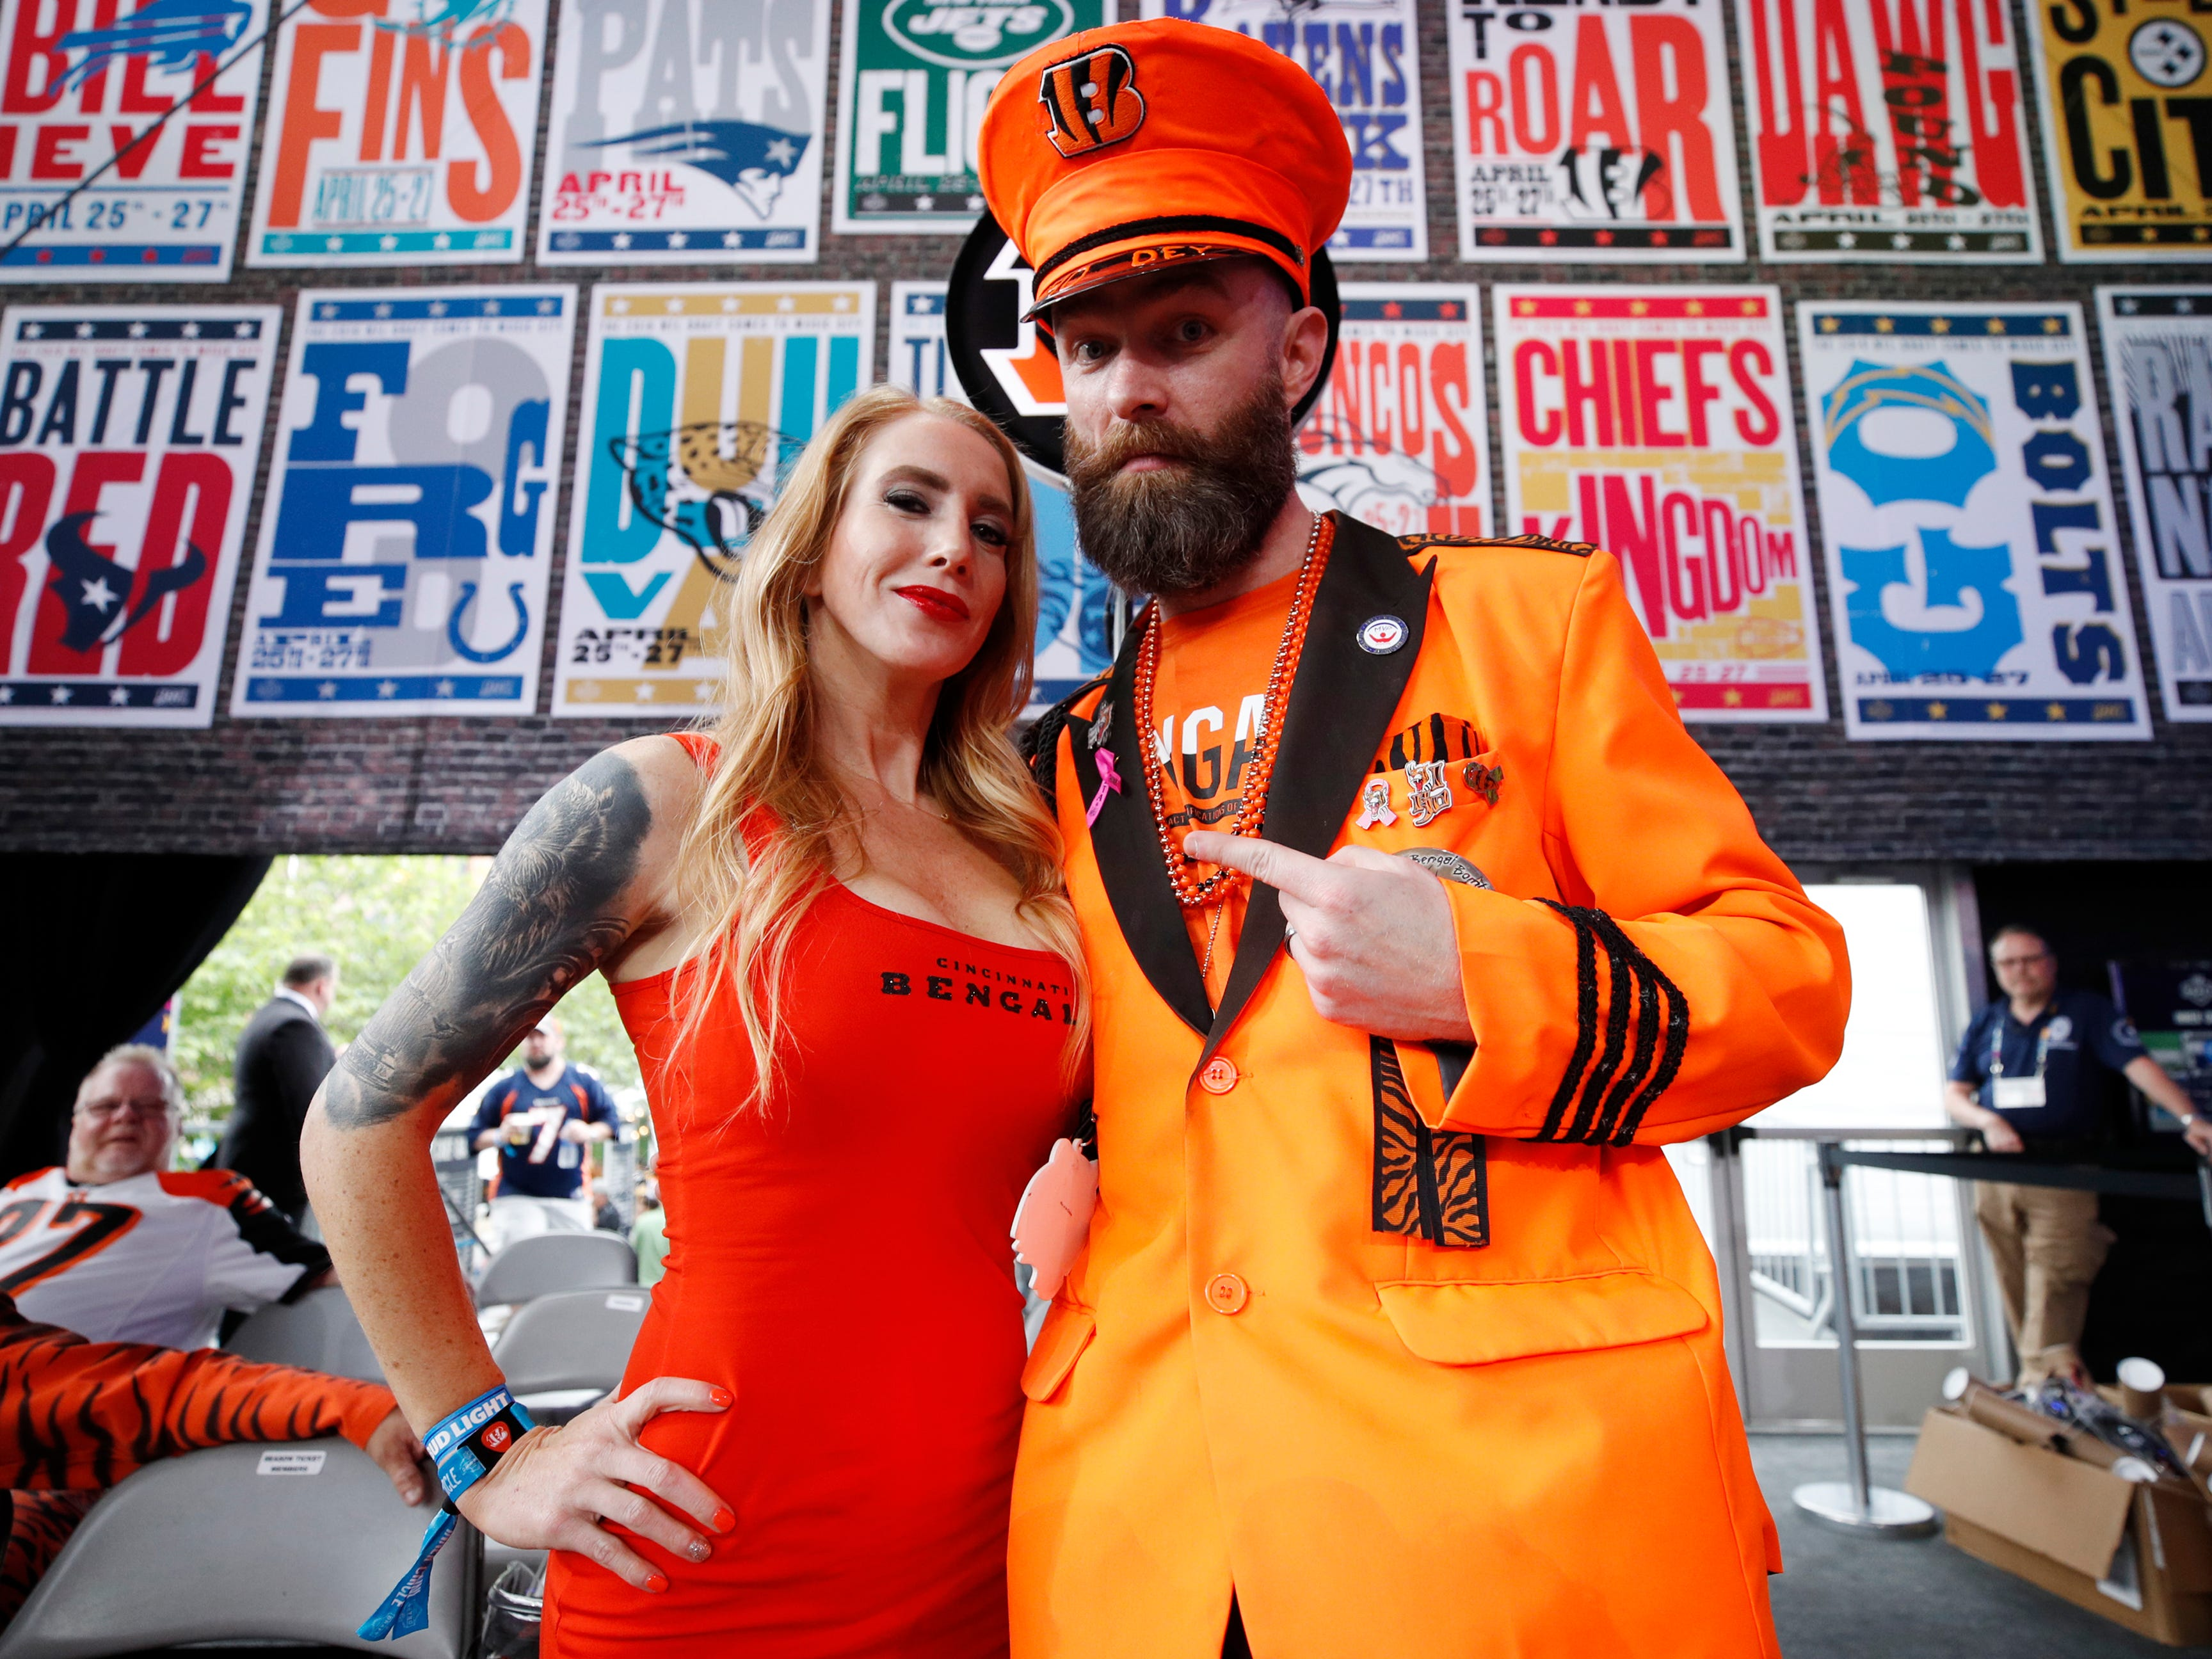 A pair of Cincinnati Bengals fans look on prior to the start of the first round of the NFL draft.